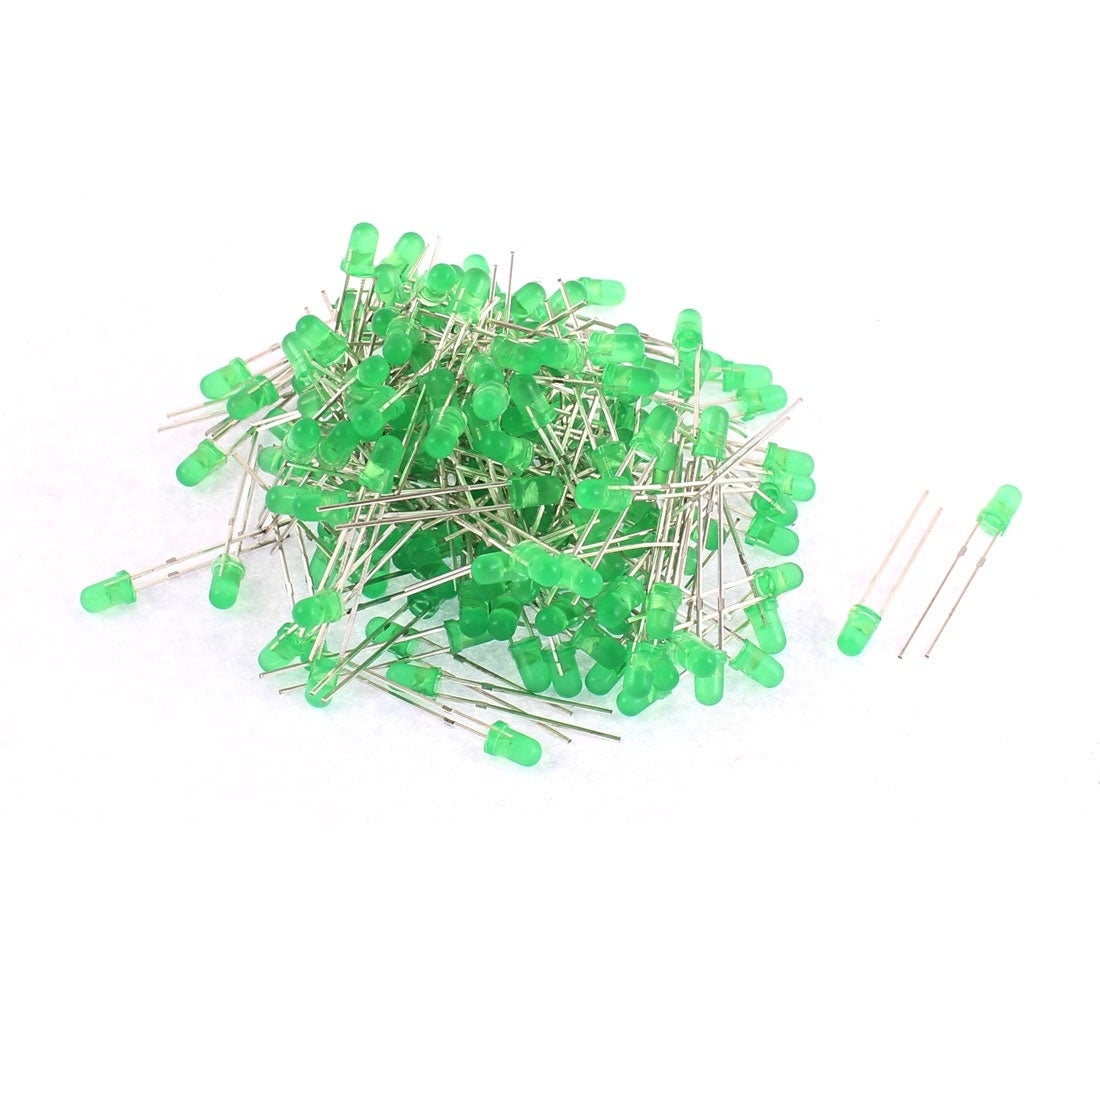 Shop 200pcs 25 X 4mm 2 Terminals Green Light Emitting Diode Leds Electrical Circuits Lamp Bulb On Sale Free Shipping Orders Over 45 18453480